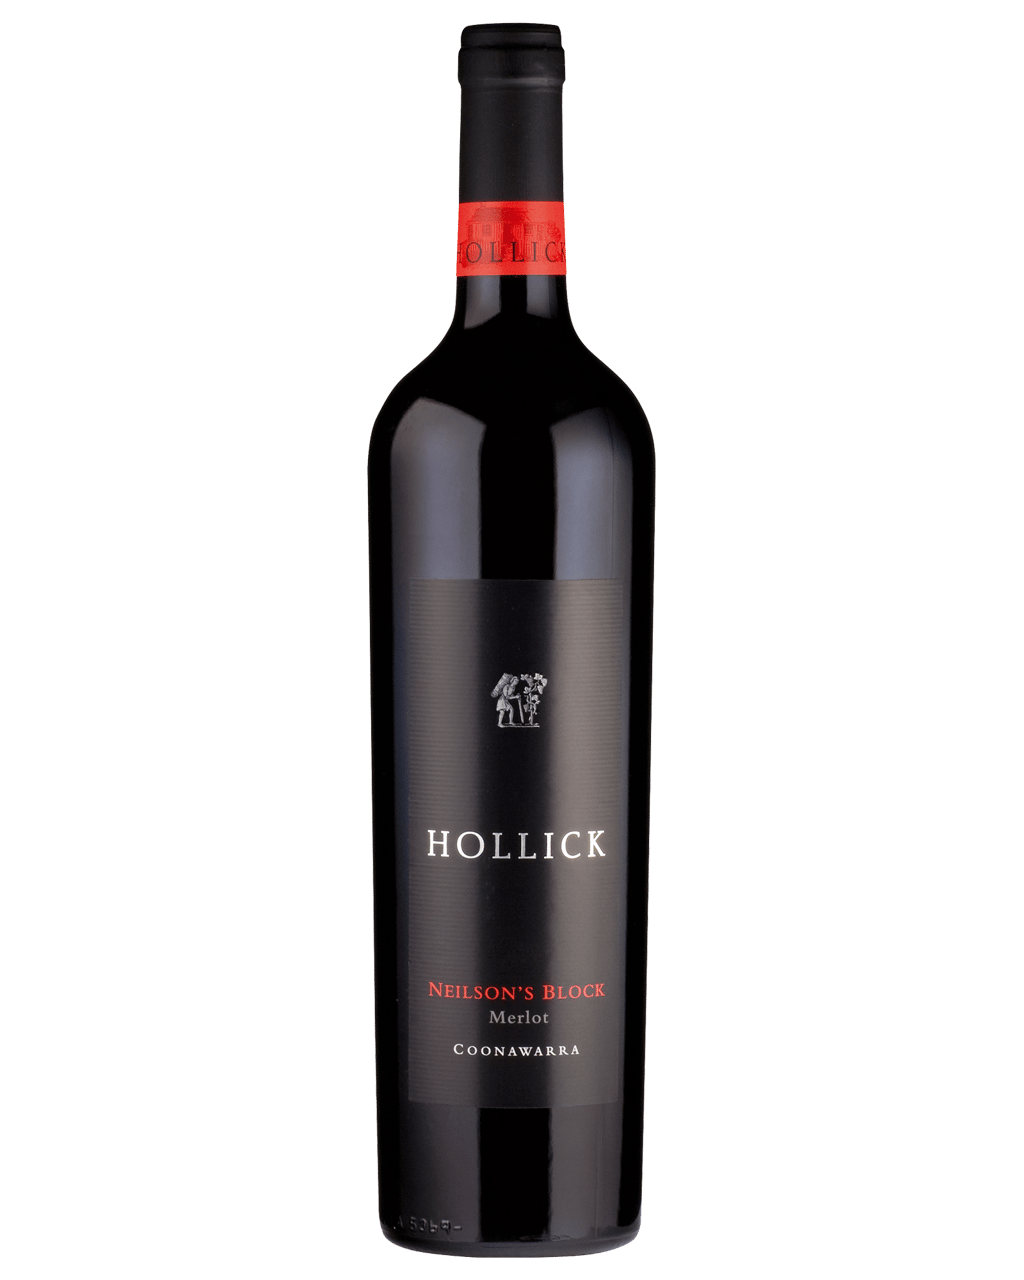 Image result for Hollick 'Neilson's Block' Merlot 2008